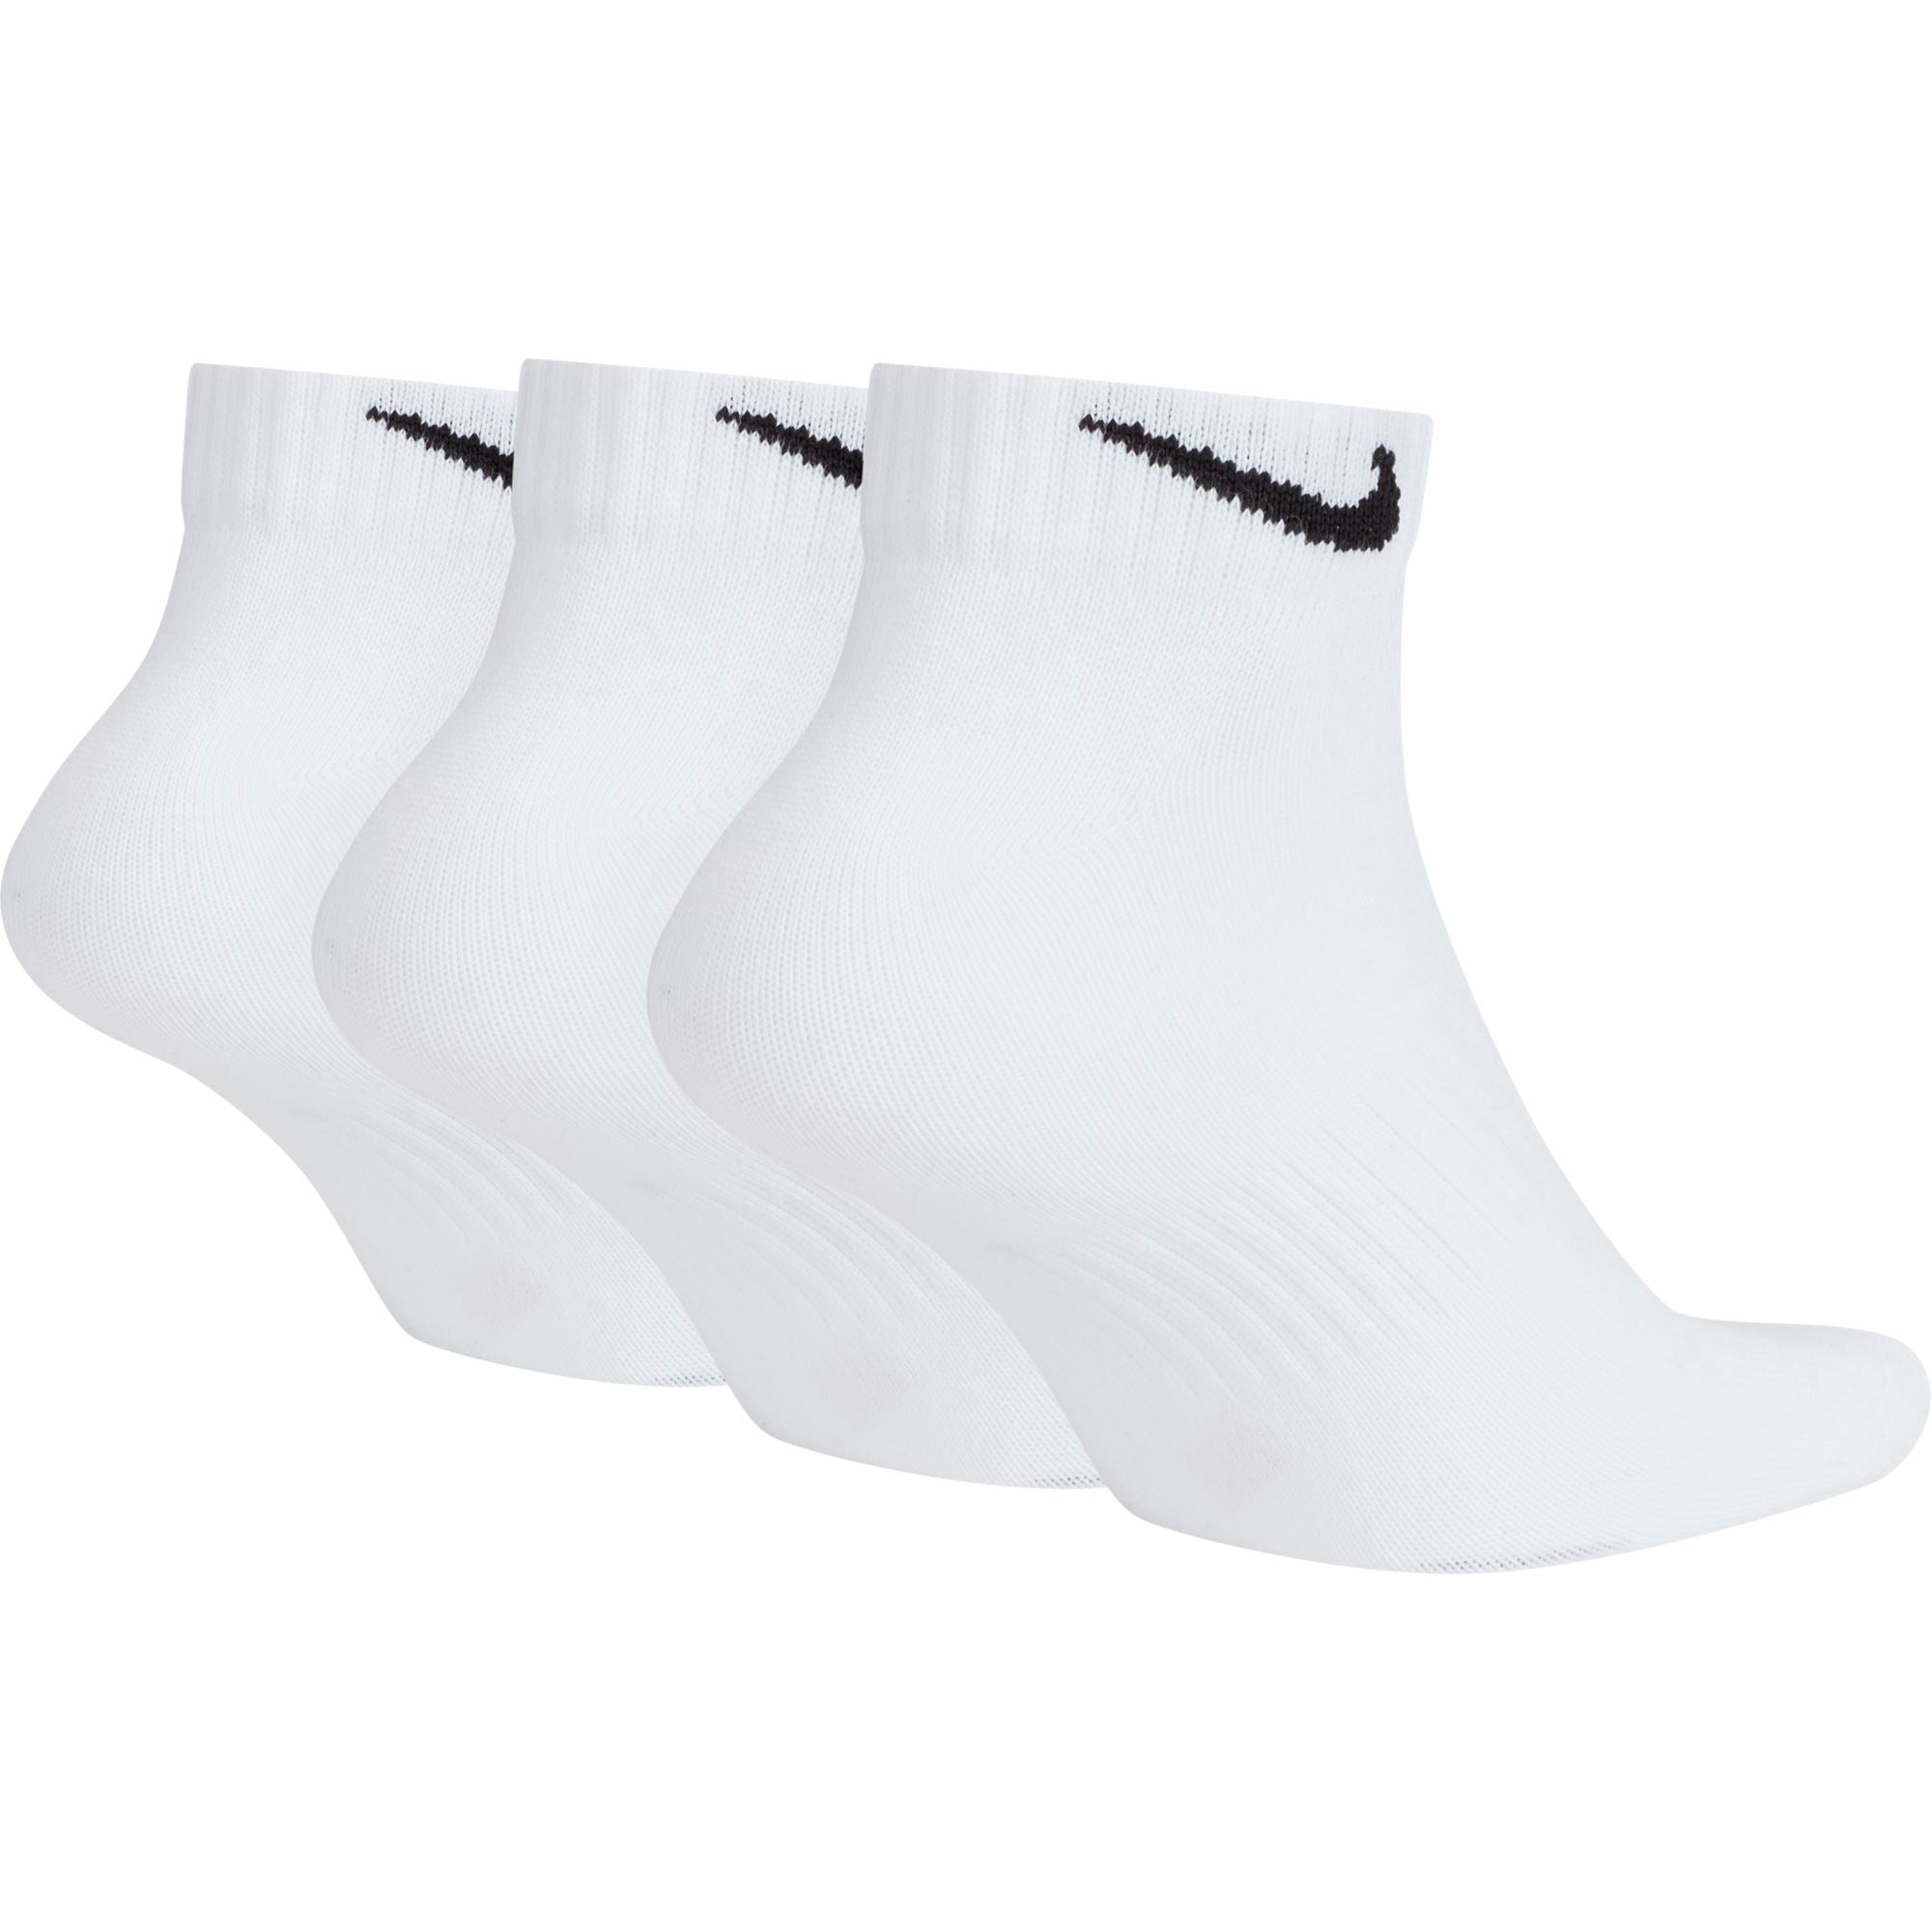 Nike Everyday Lightweight Low Socks - Black/White SP-ApparelSocks-Unisex Nike